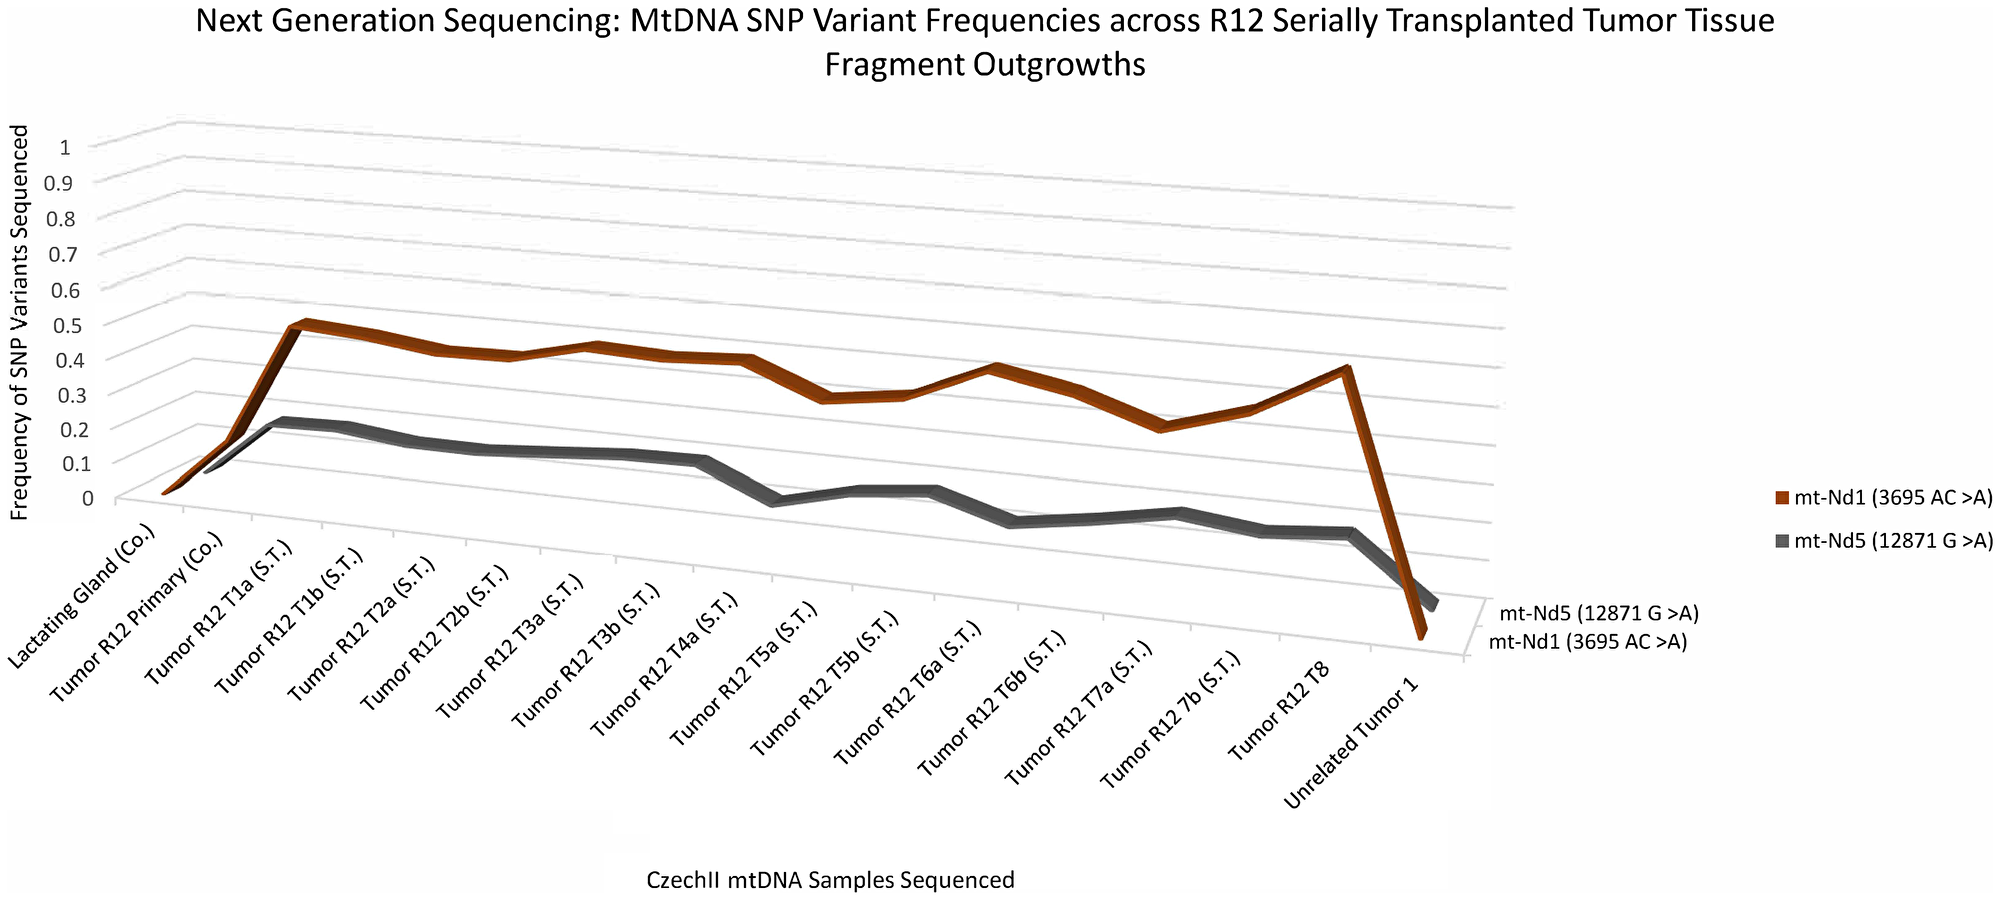 CzechII mammary R12 tumor mtDNA SNP variant calling via Next Generation sequencing.